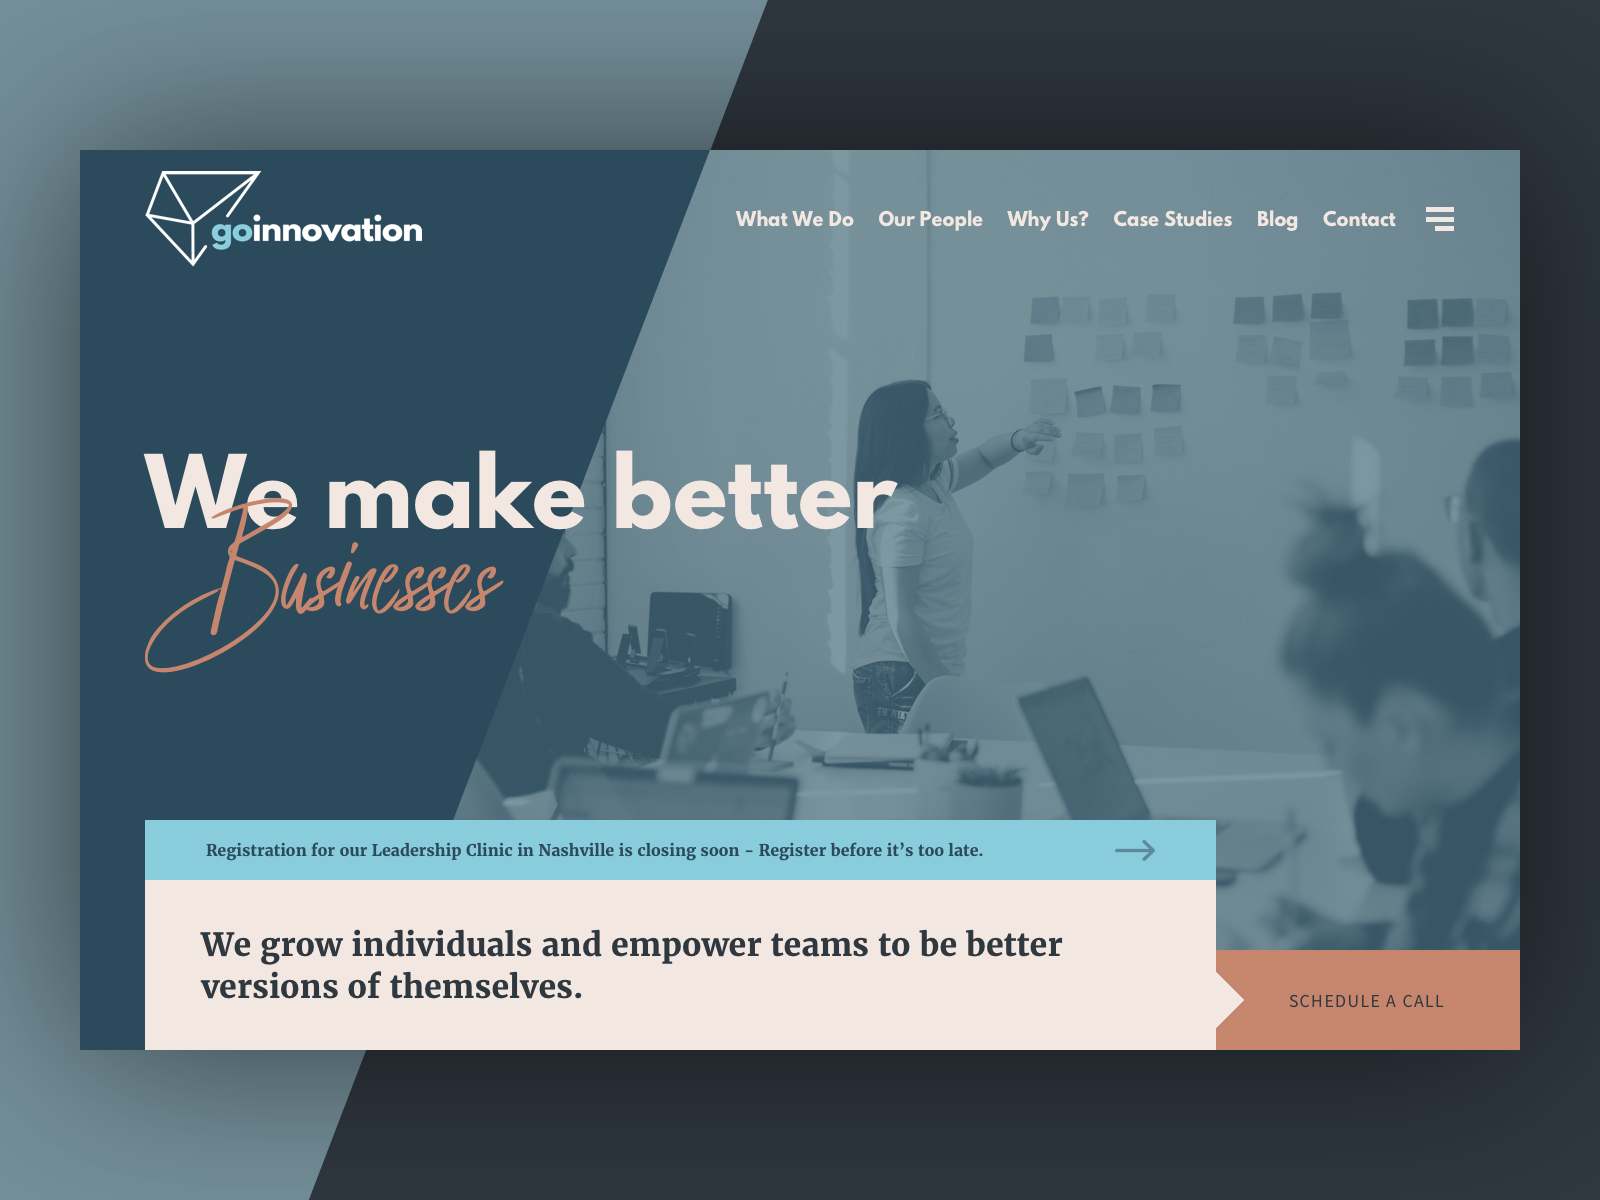 Go Innovation by Adam Swisher for Cross & Crown on Dribbble